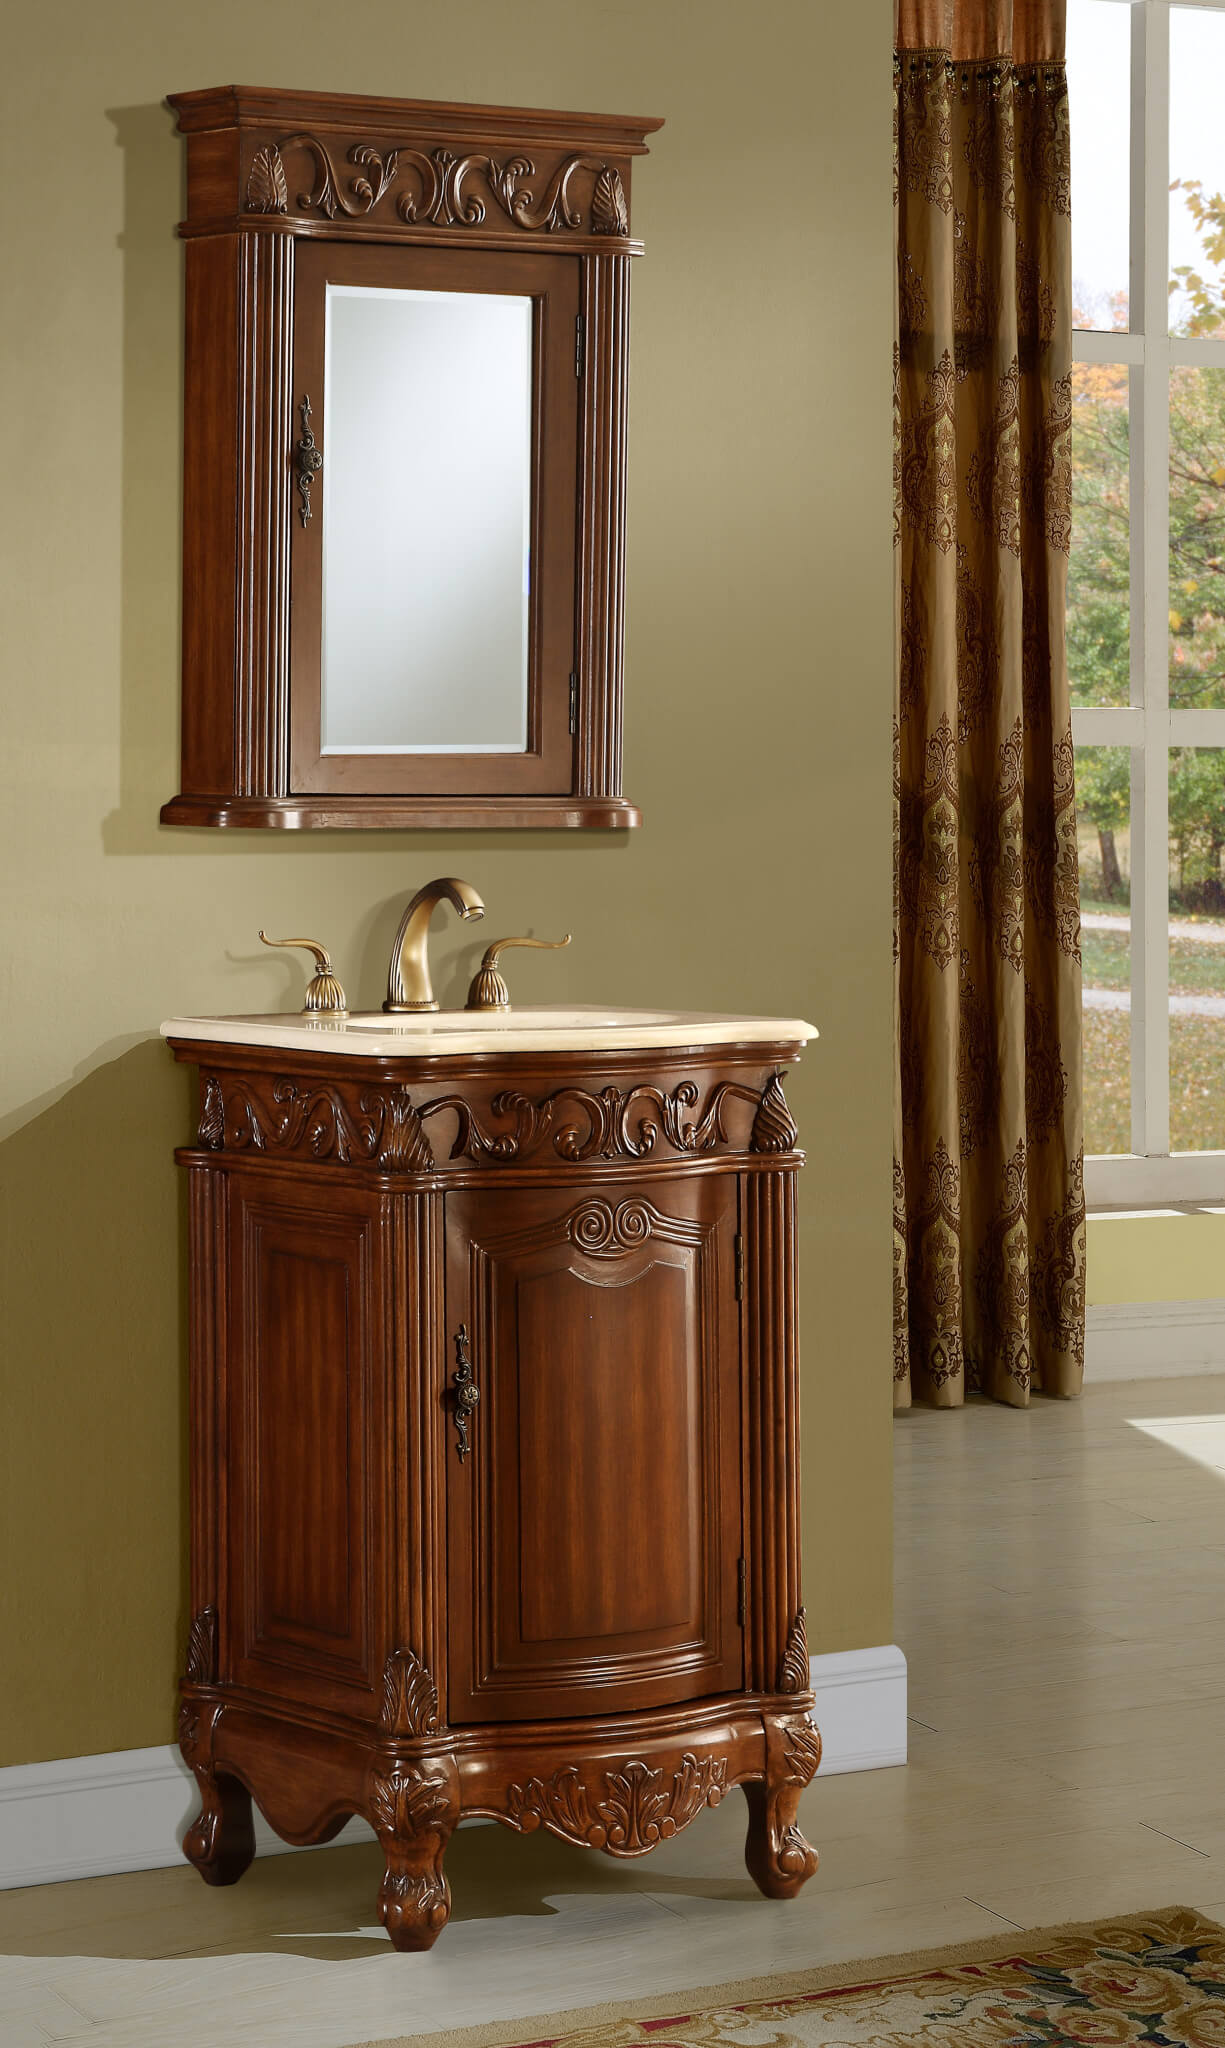 21in Antonia Vanity Space Saving Cabinet Antique Bathroom Vanity Traditional Style Vanity